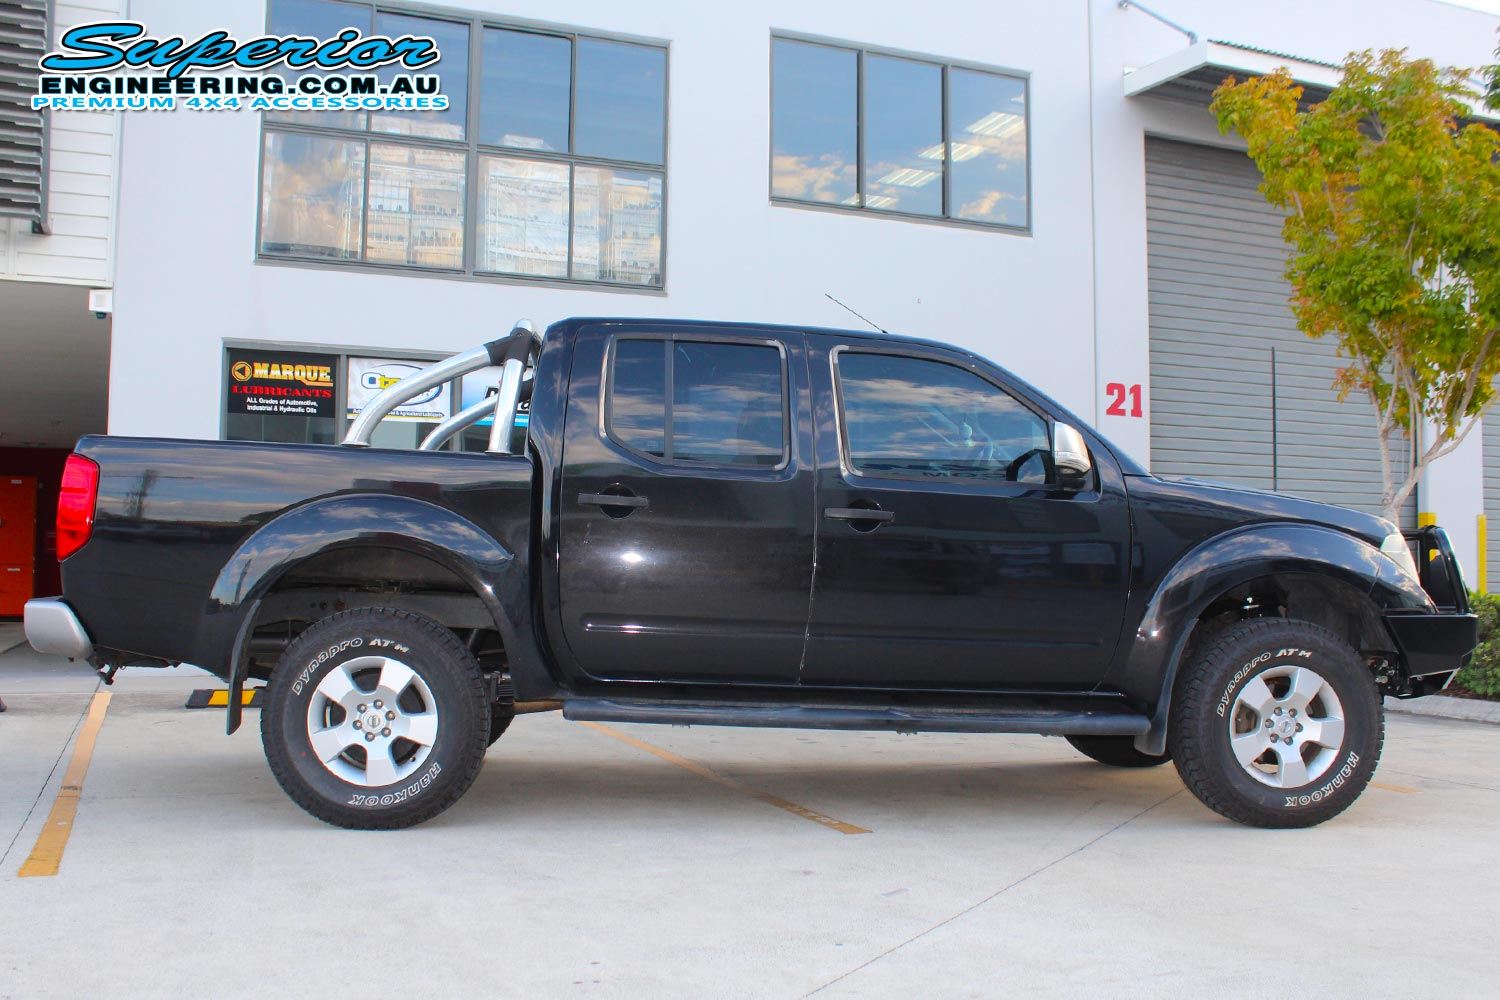 Right side view of a black dual cab Nissan Navara D40 after fitting a 40mm Ironman 4x4 lift kit and some Ironman, Legendex and SuperPro 4x4 accessories